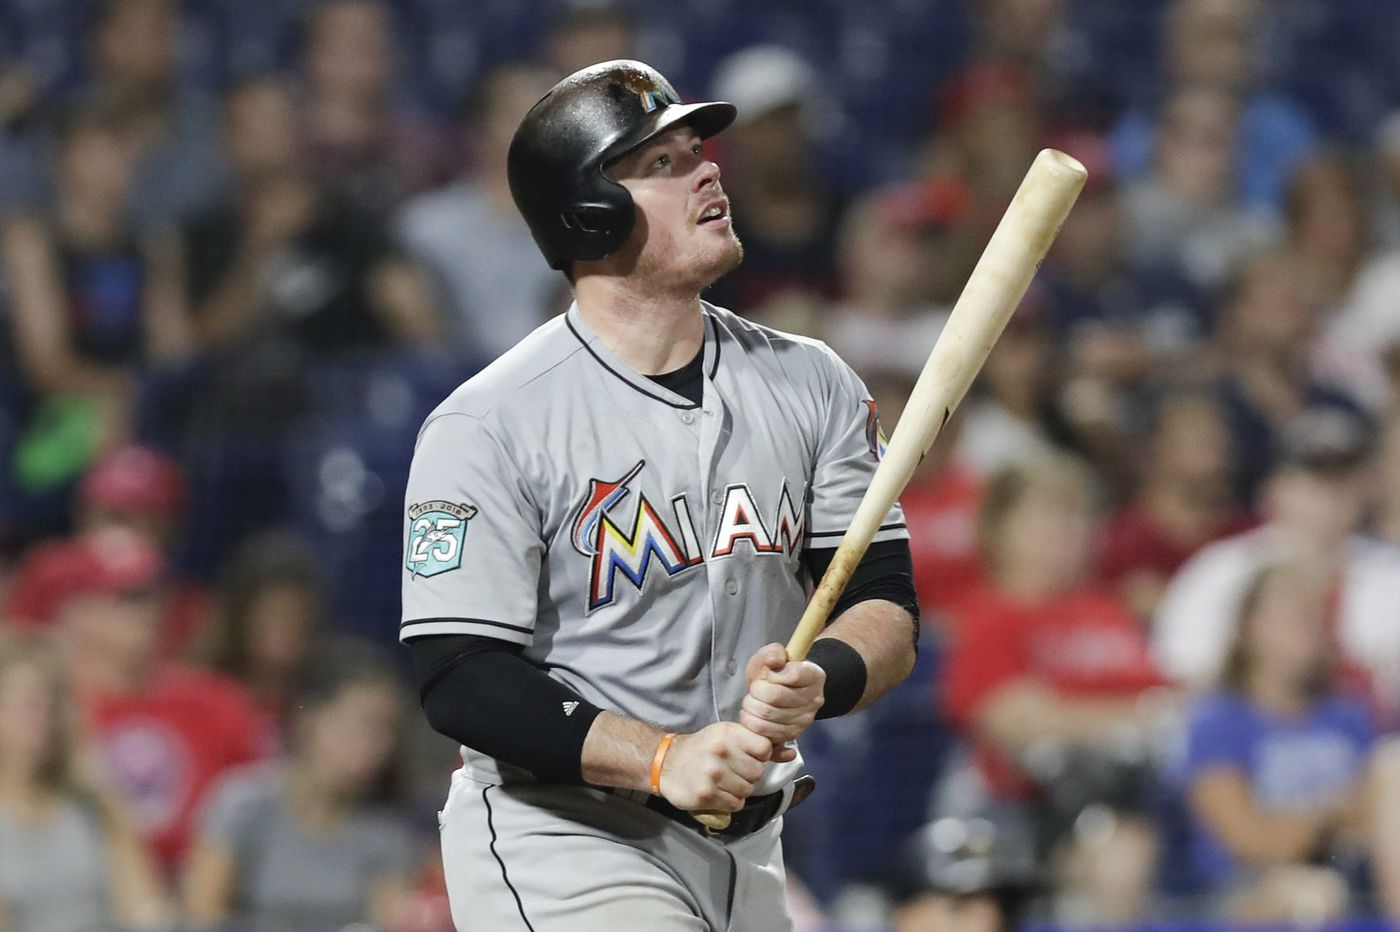 Phillies trade for slugger Justin Bour, adding to their bench